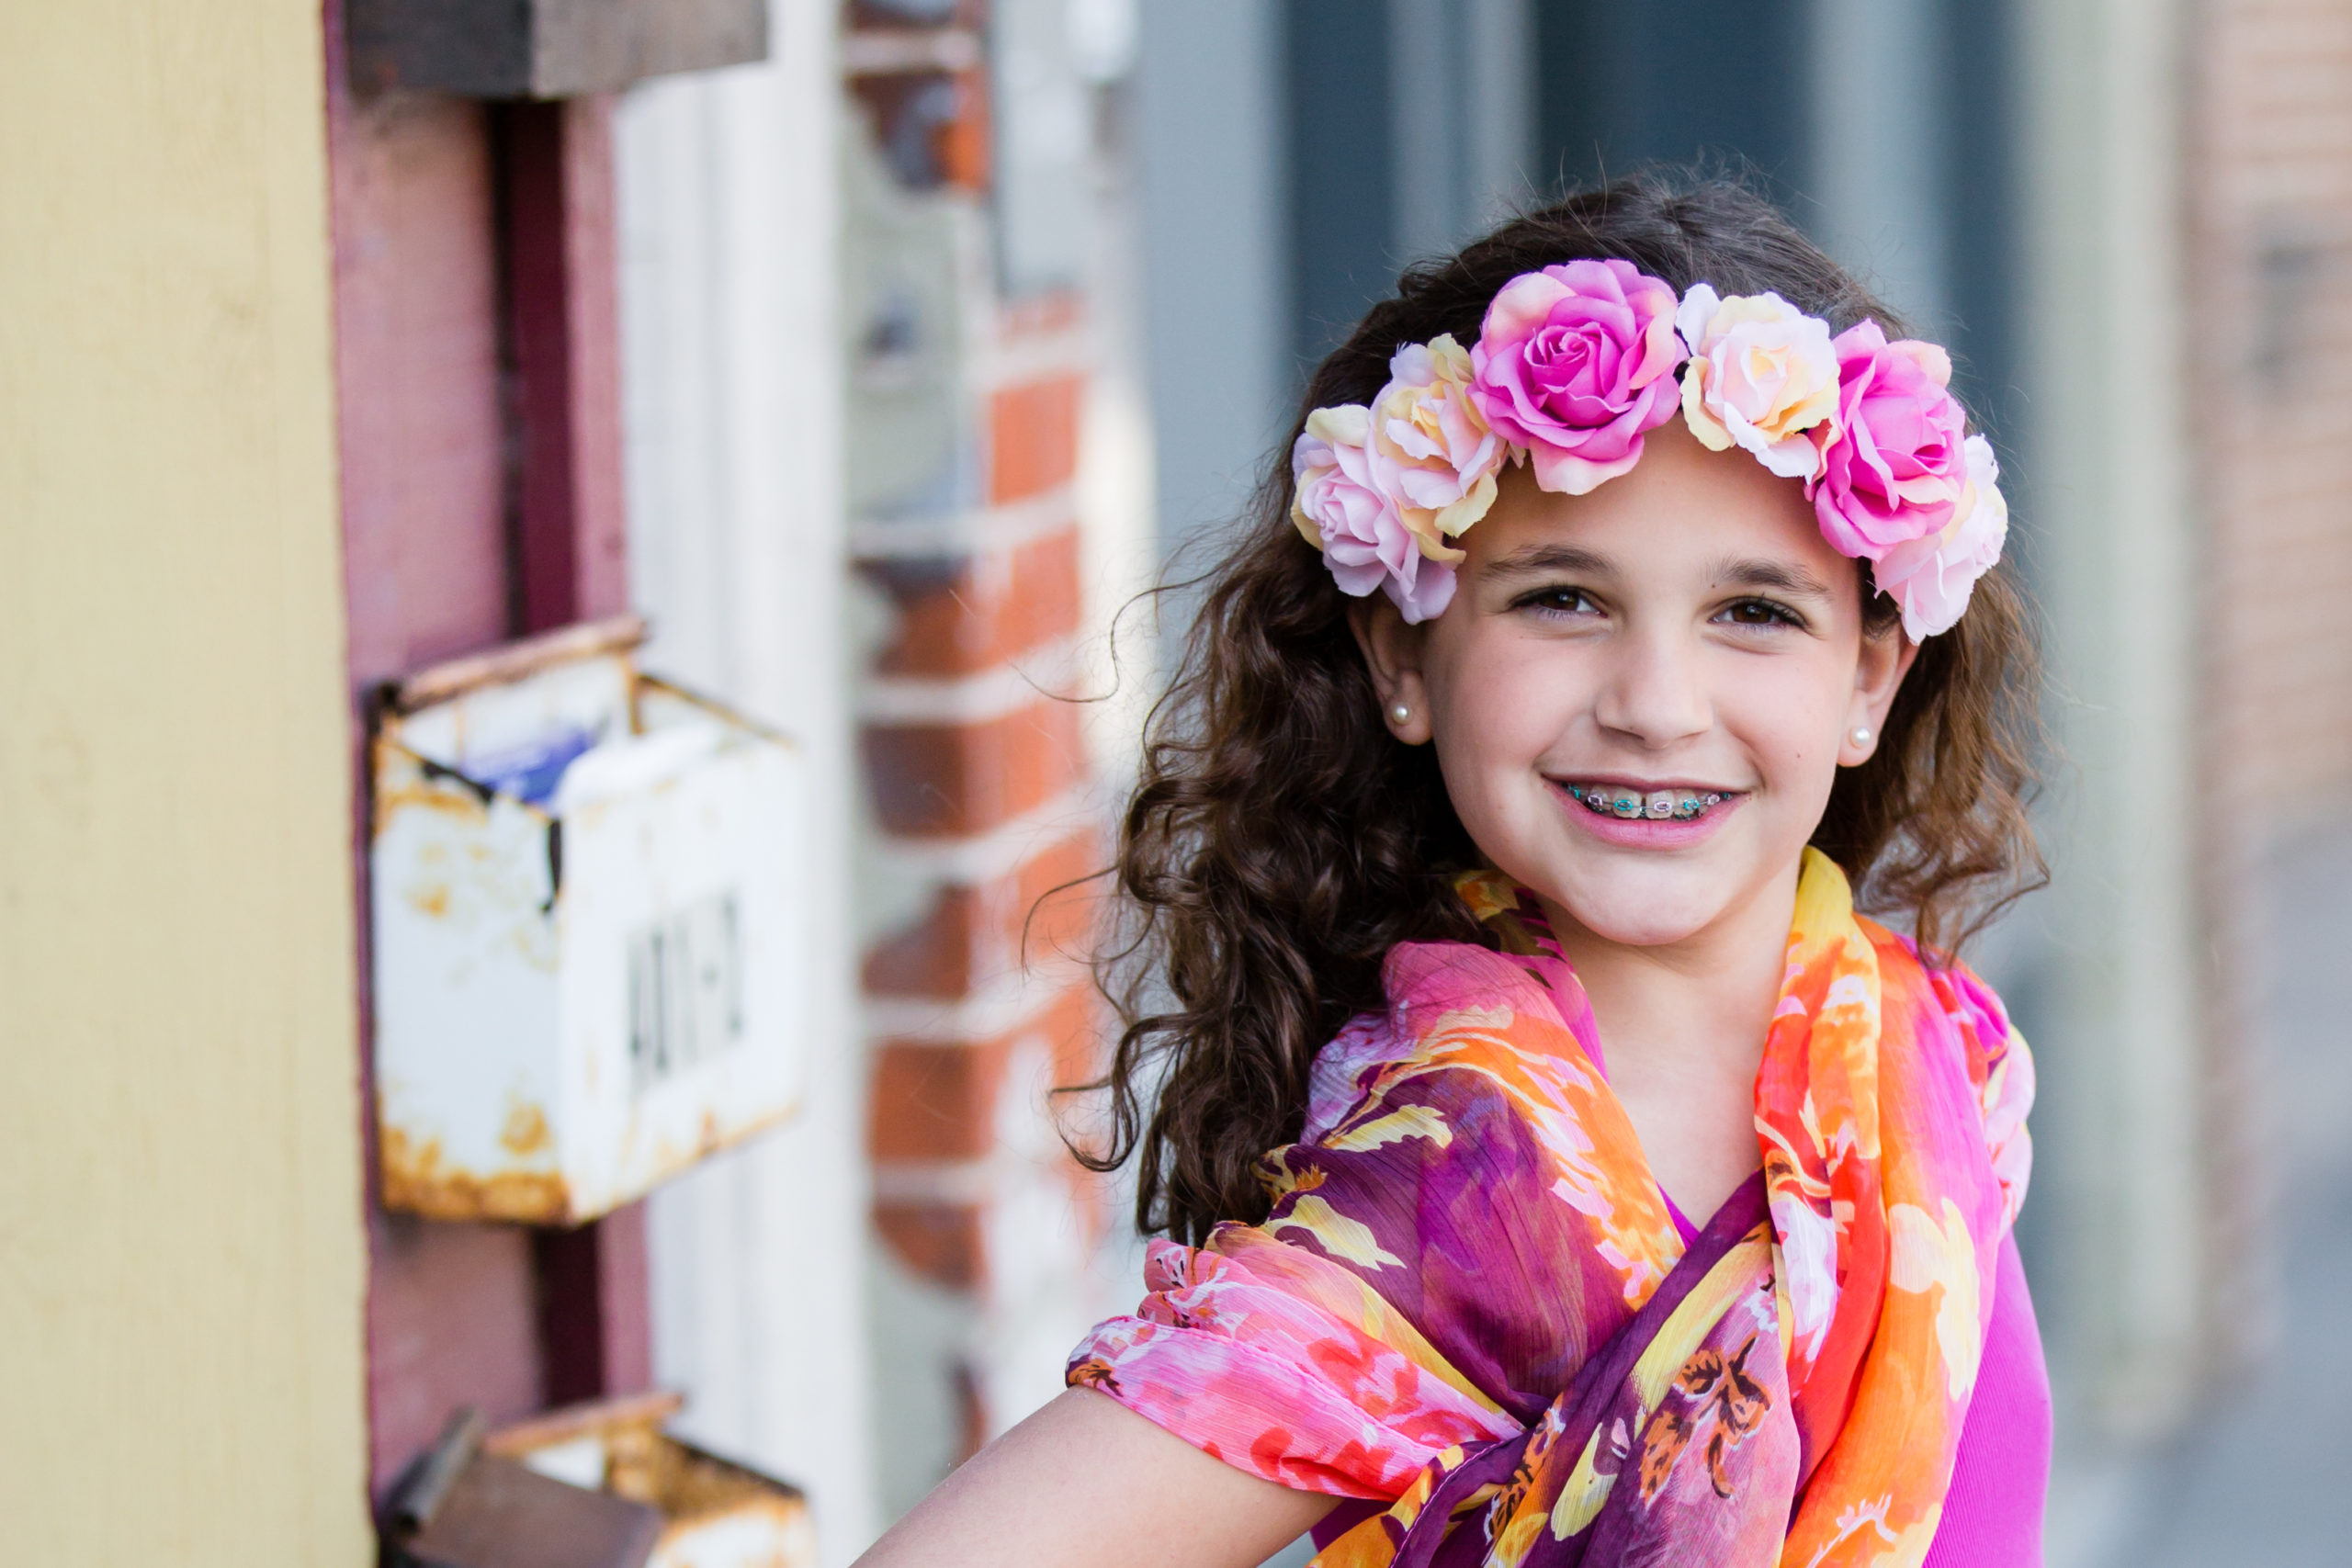 Jenna-in-Milford-with-floral-headband-3-scaled Colorful Urban Girl Edit